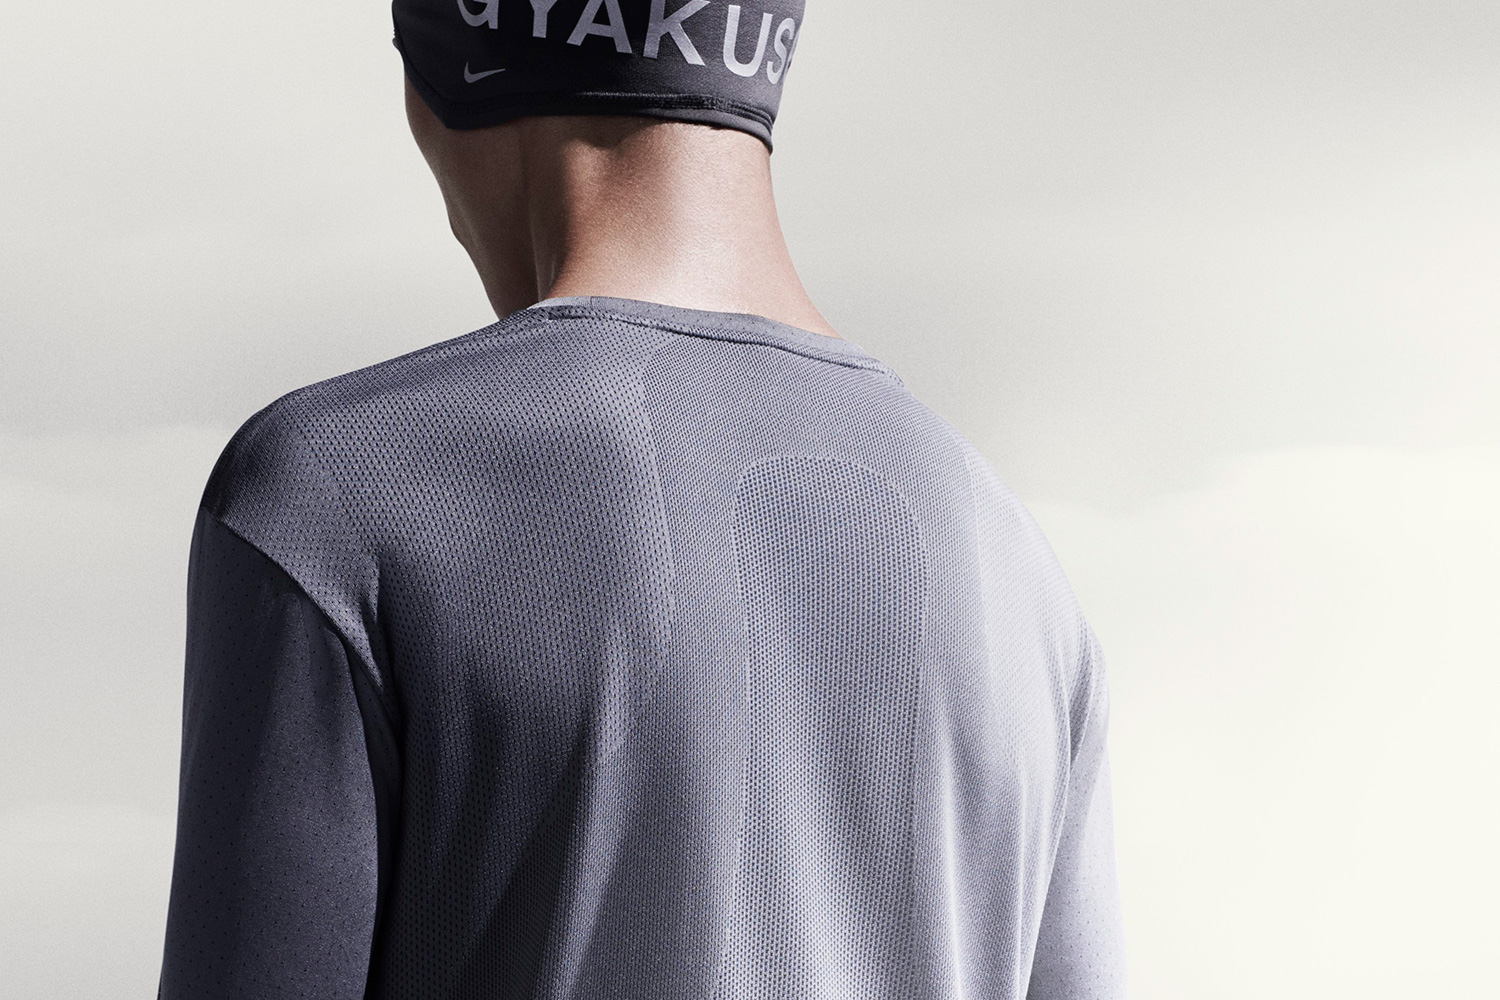 undercover-x-nike-gyakusou-holiday-2014-collection-04